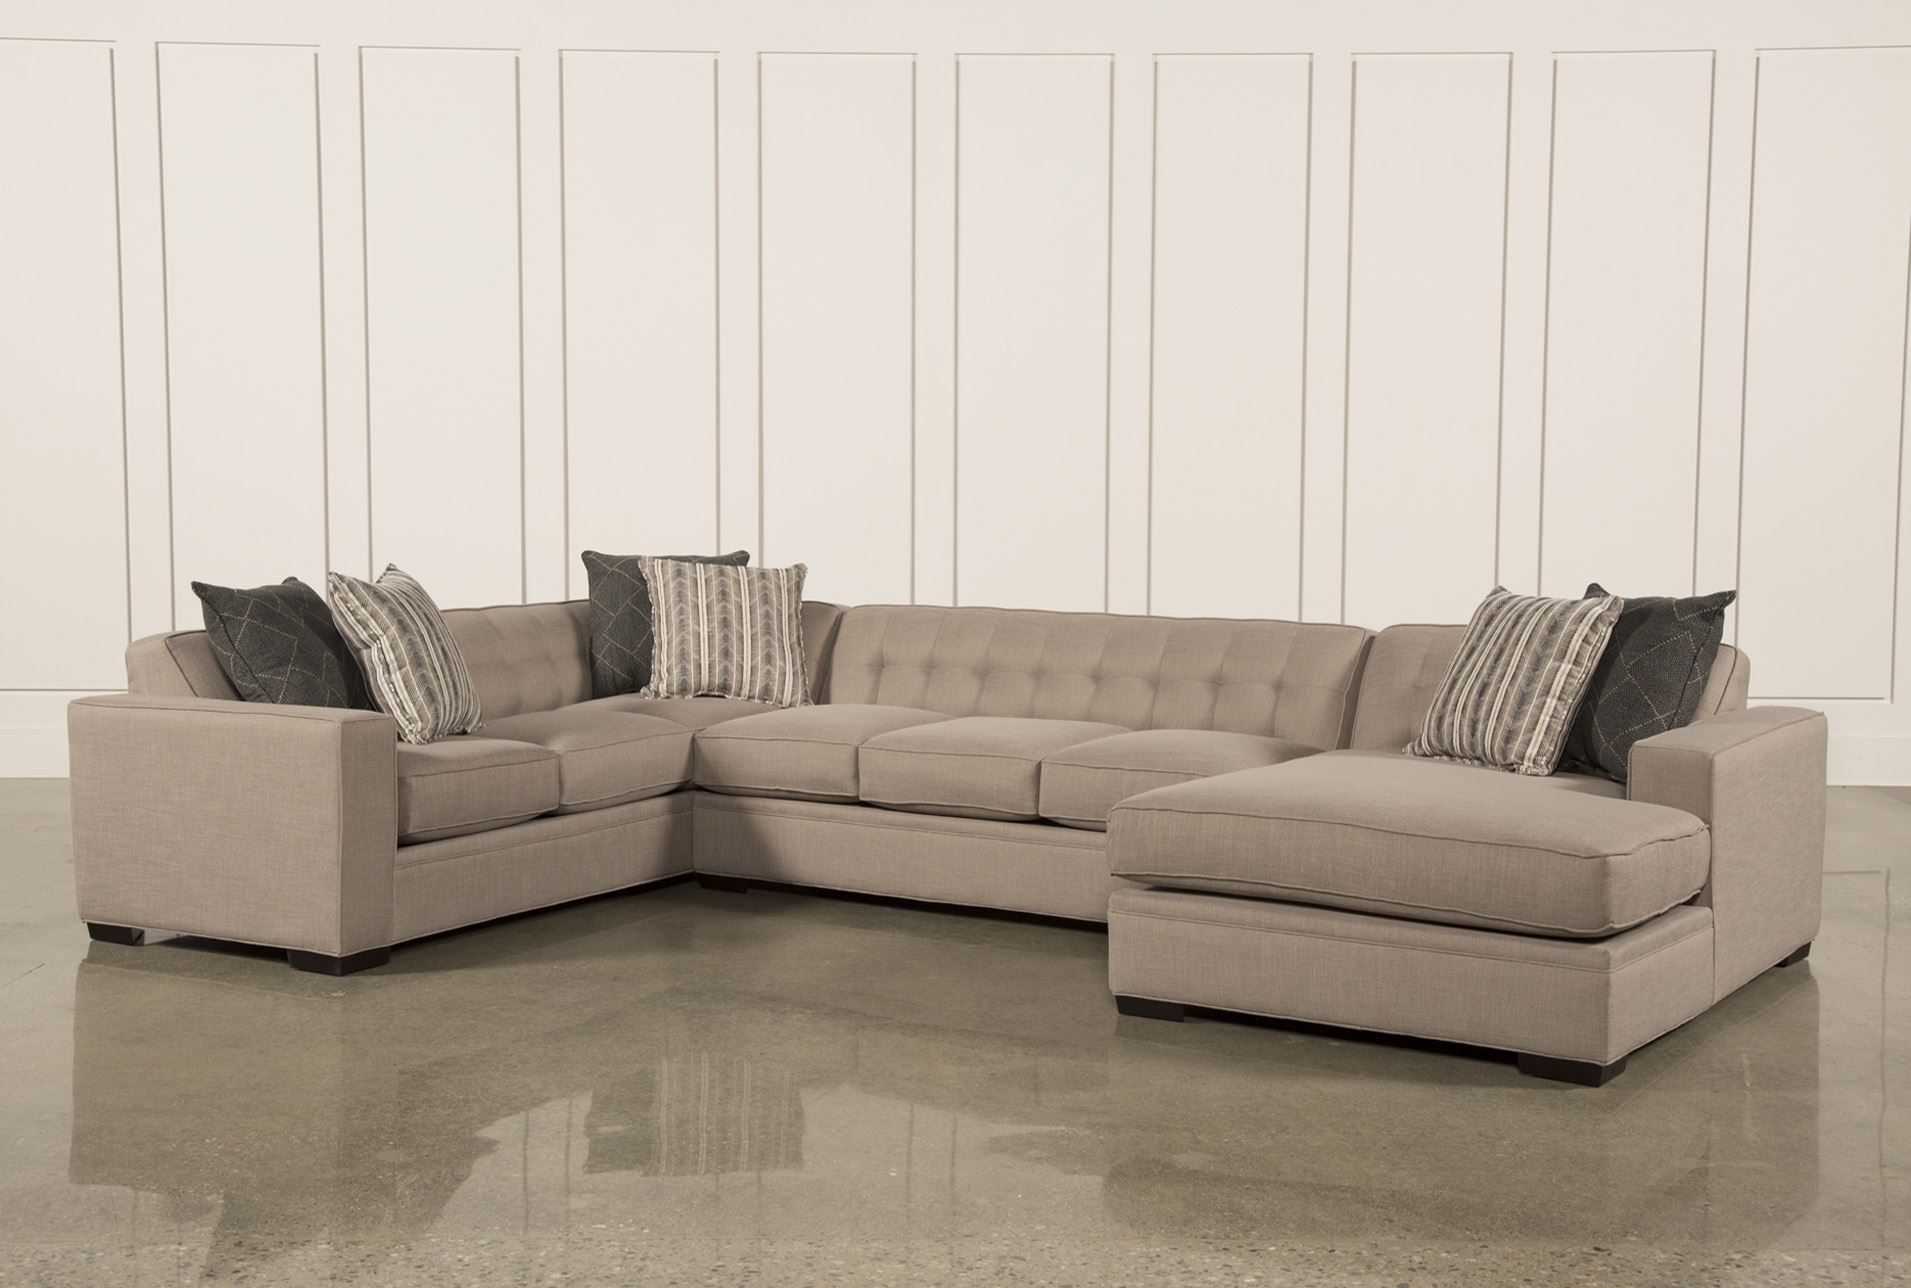 Corbin 3 Piece Sectional W/raf Chaise | New House: Loft | Pinterest regarding Norfolk Grey 3 Piece Sectionals With Raf Chaise (Image 6 of 30)